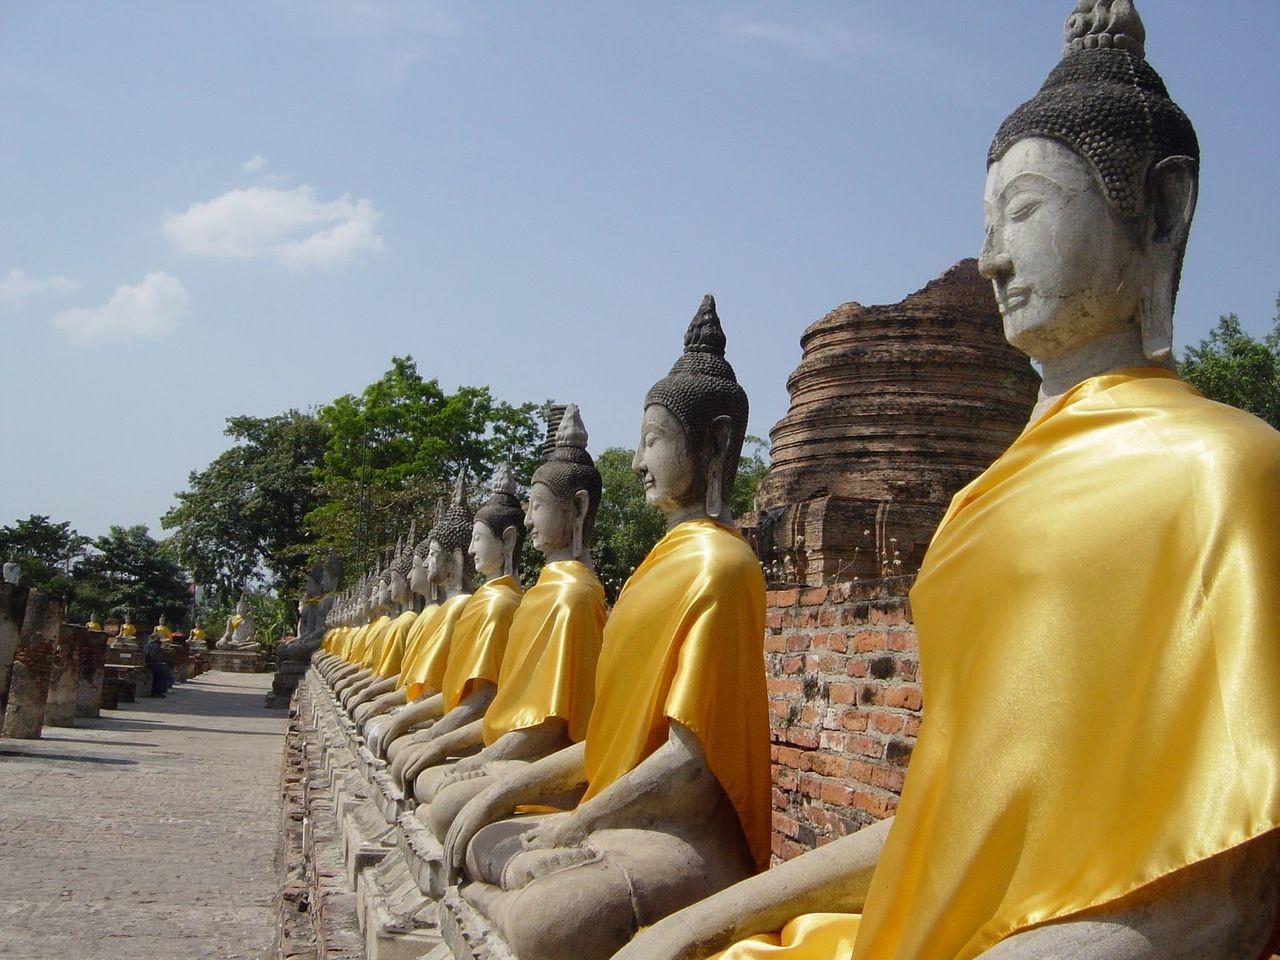 thailand Religion Statue Human Representation In A Row Tree Spirituality Cross-legged Travel Destinations Cultures Place Of Worship Sitting Gold Gold Colored No People Sculpture Outdoors Sky Day